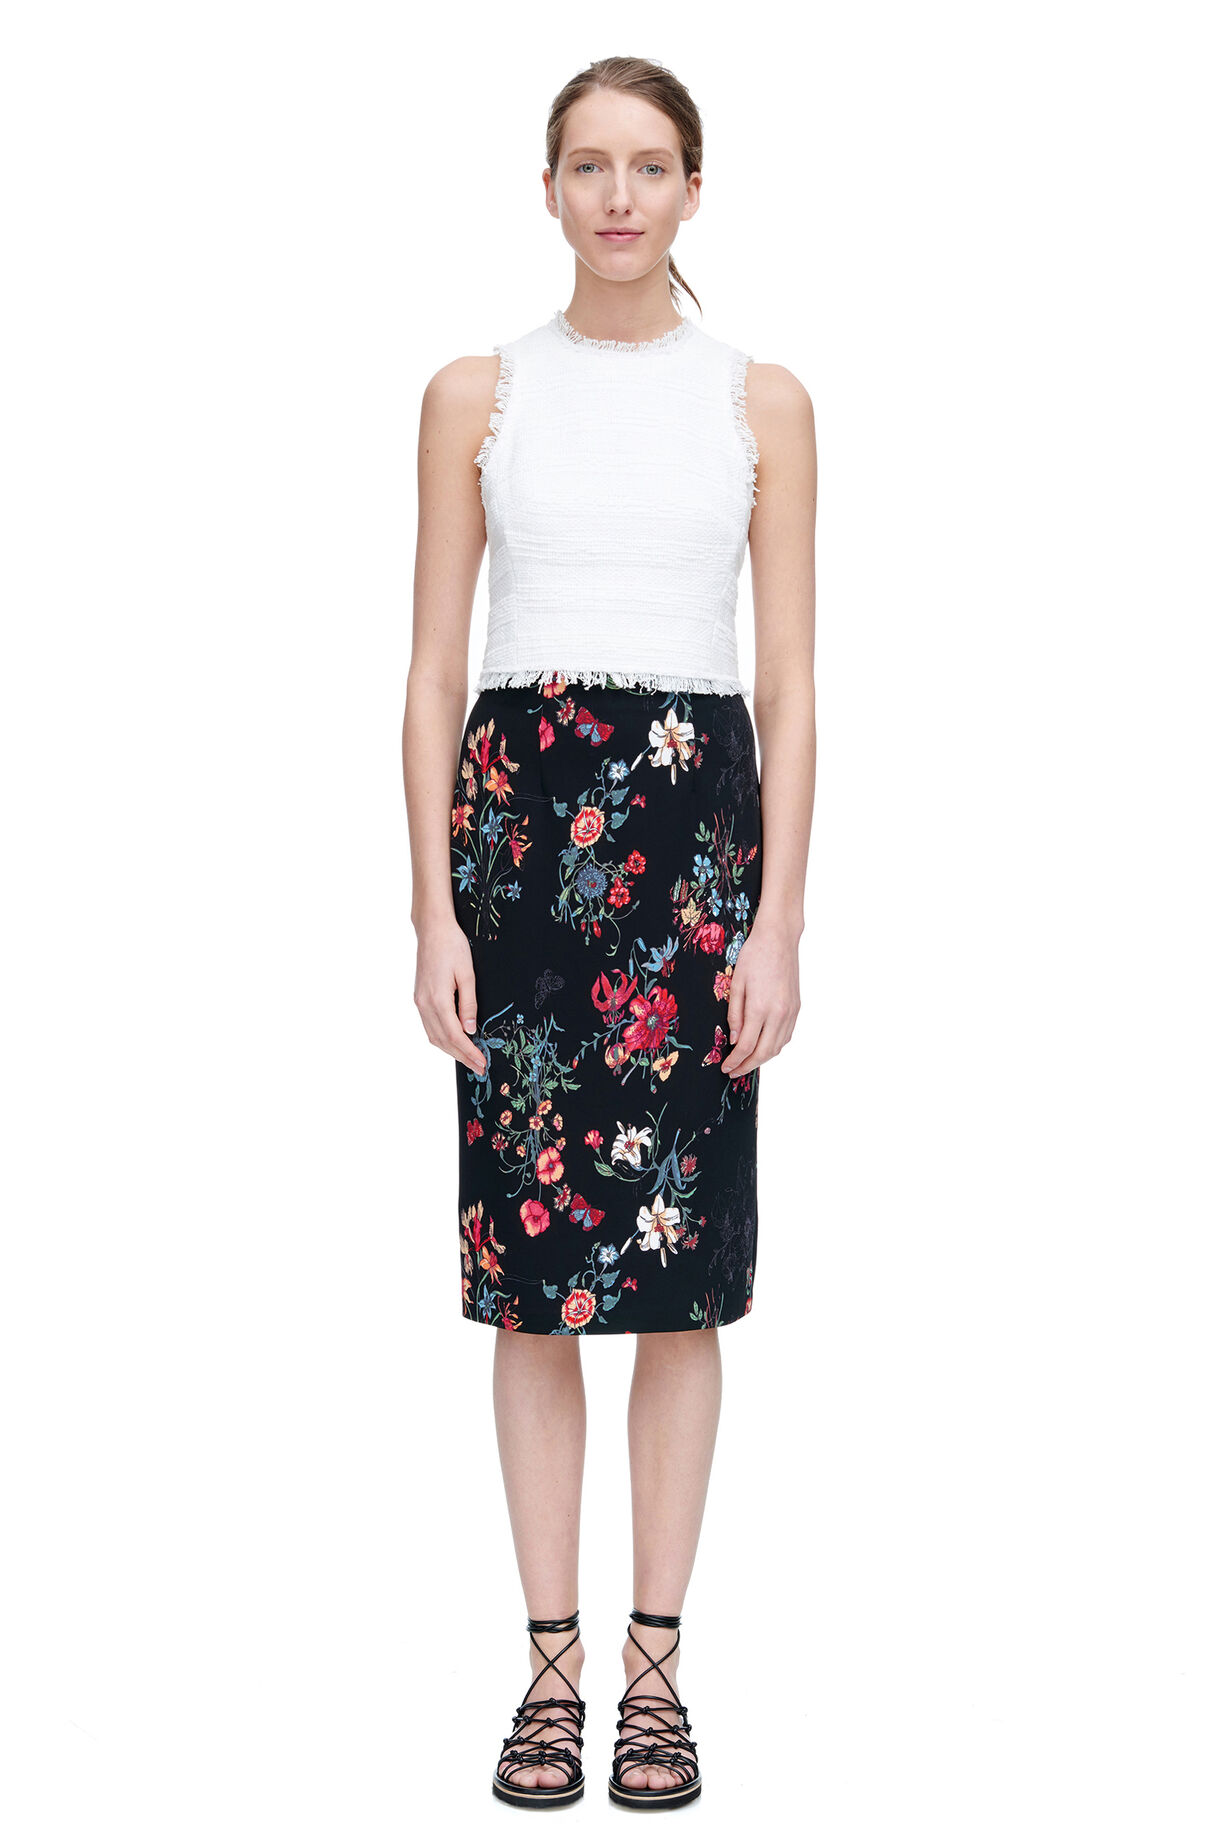 Shop for womens floral pencil skirt online at Target. Free shipping on purchases over $35 and save 5% every day with your Target REDcard.